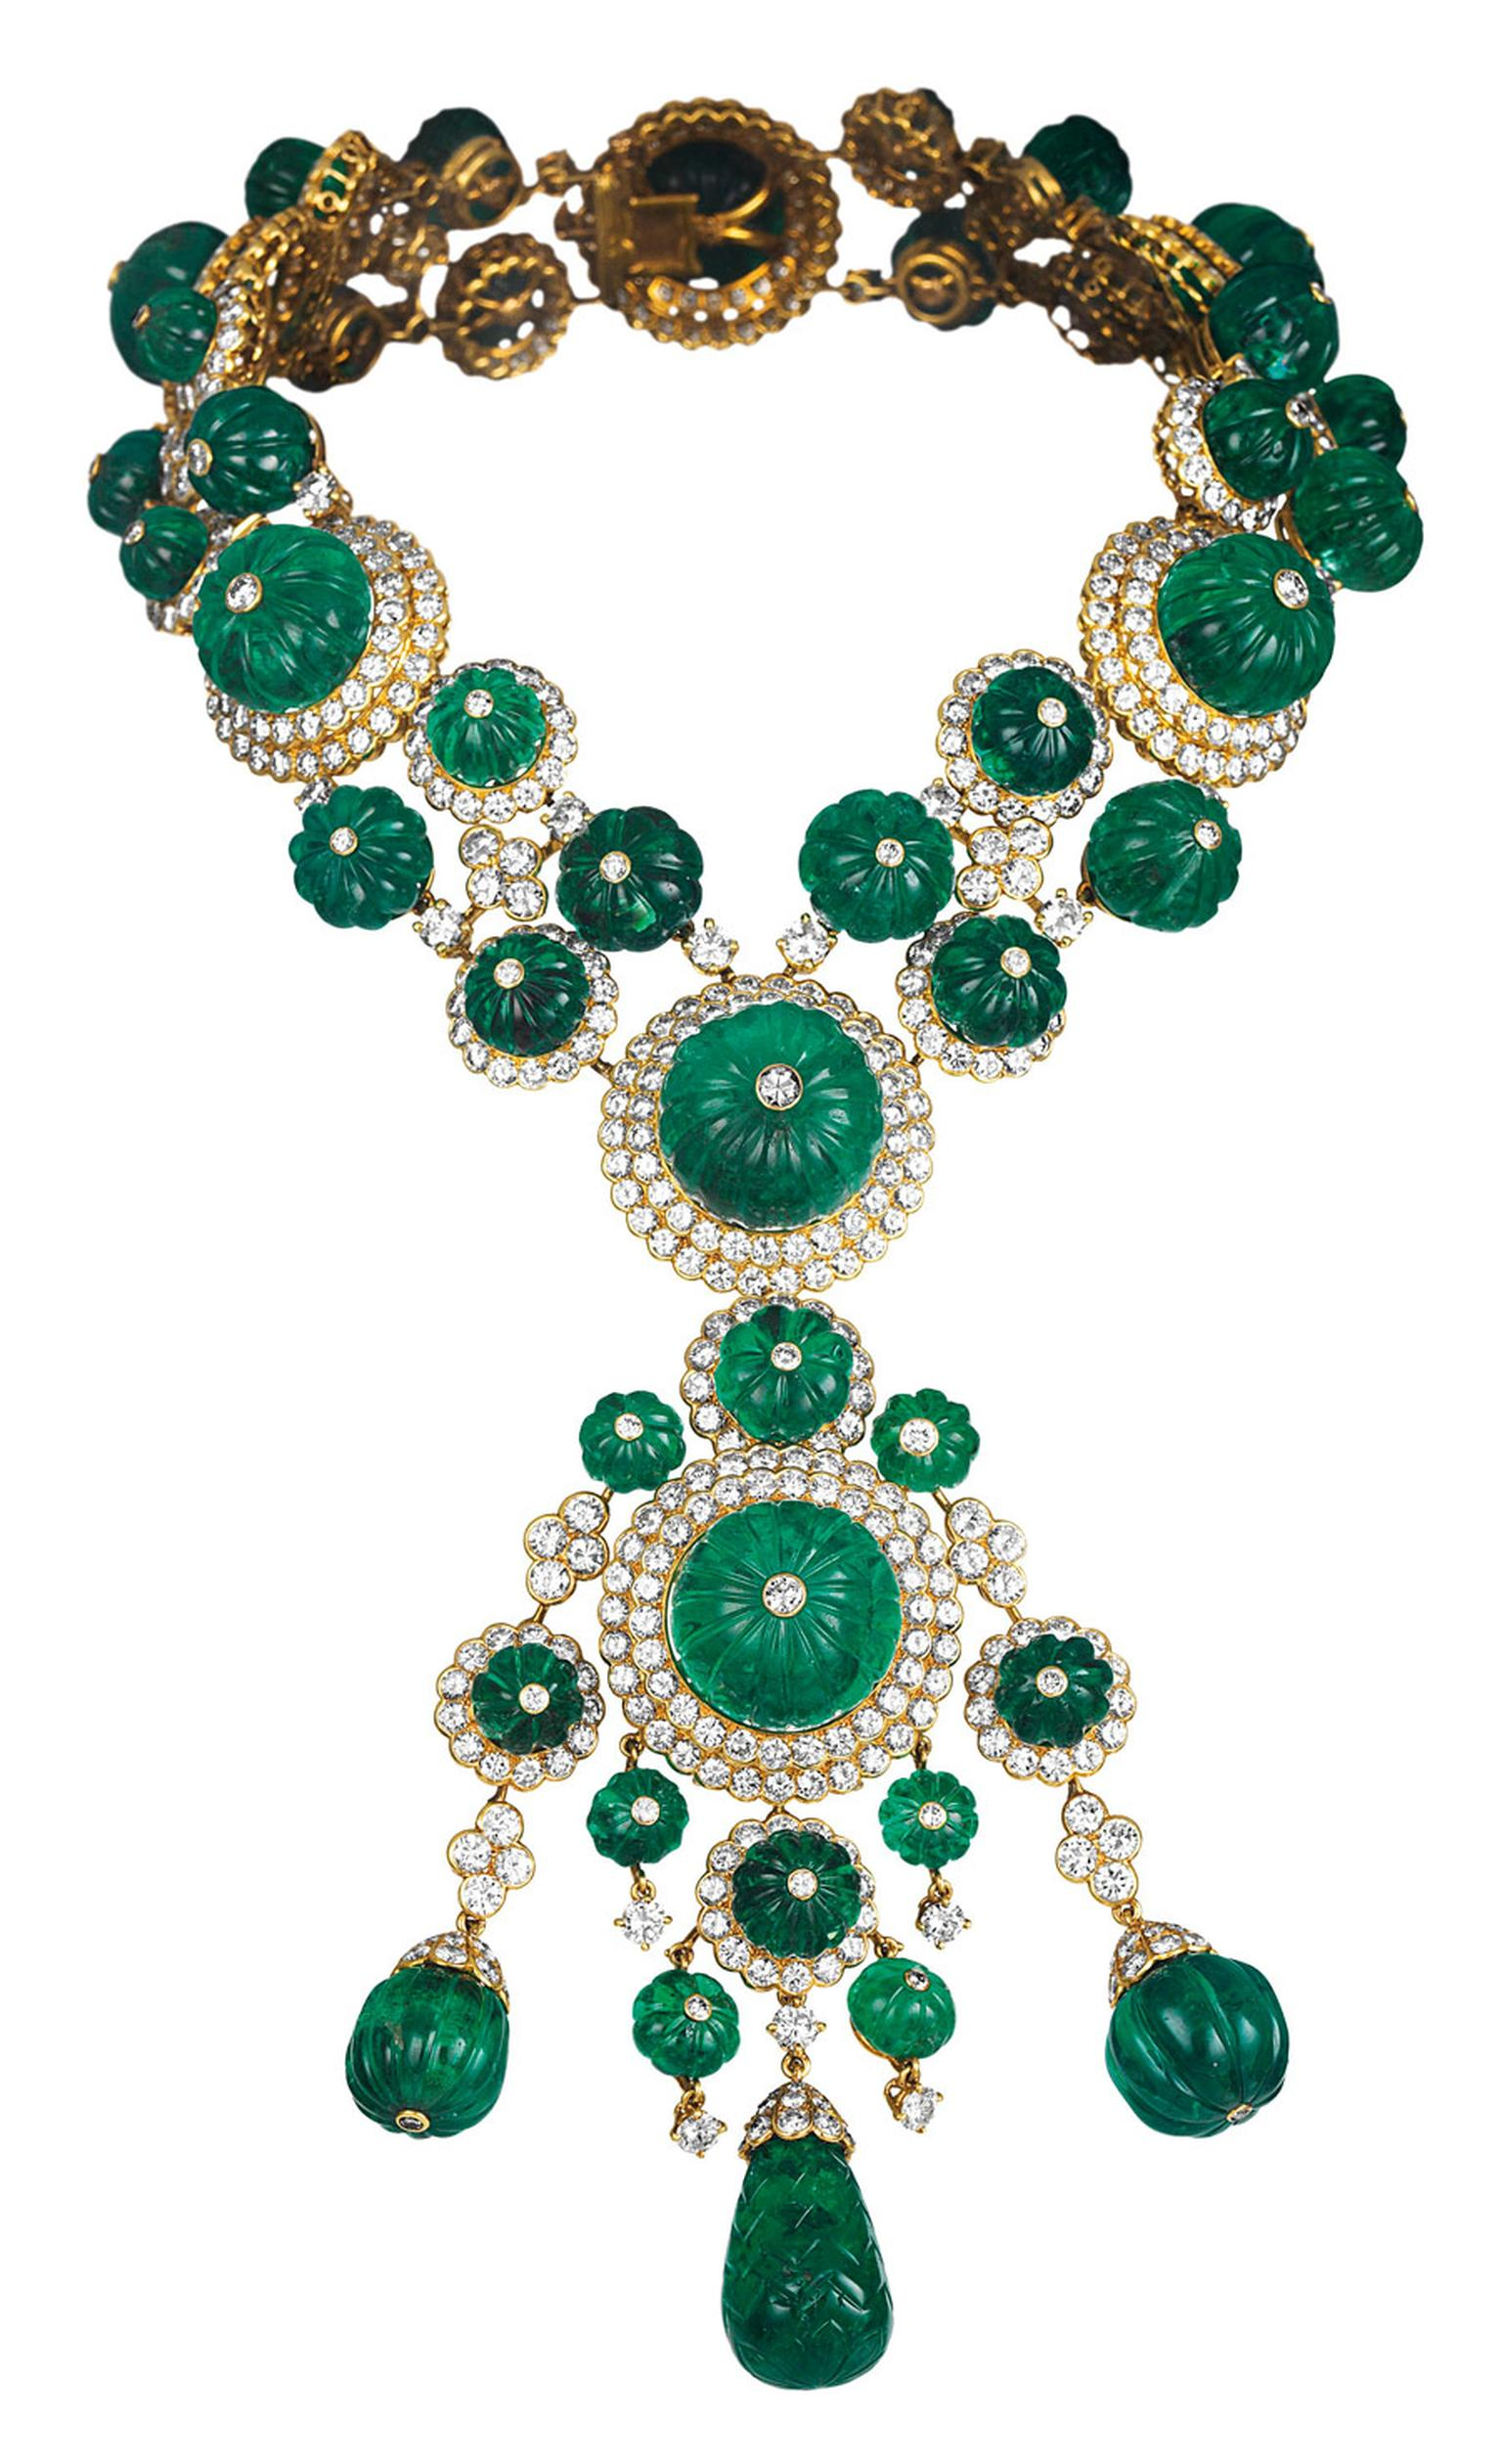 Van-Cleef-Arpels-Indian-necklace-transformable-into-two-bracelets-and-a-pendant-1971-Van-Cleef-Arpels-Collection_1